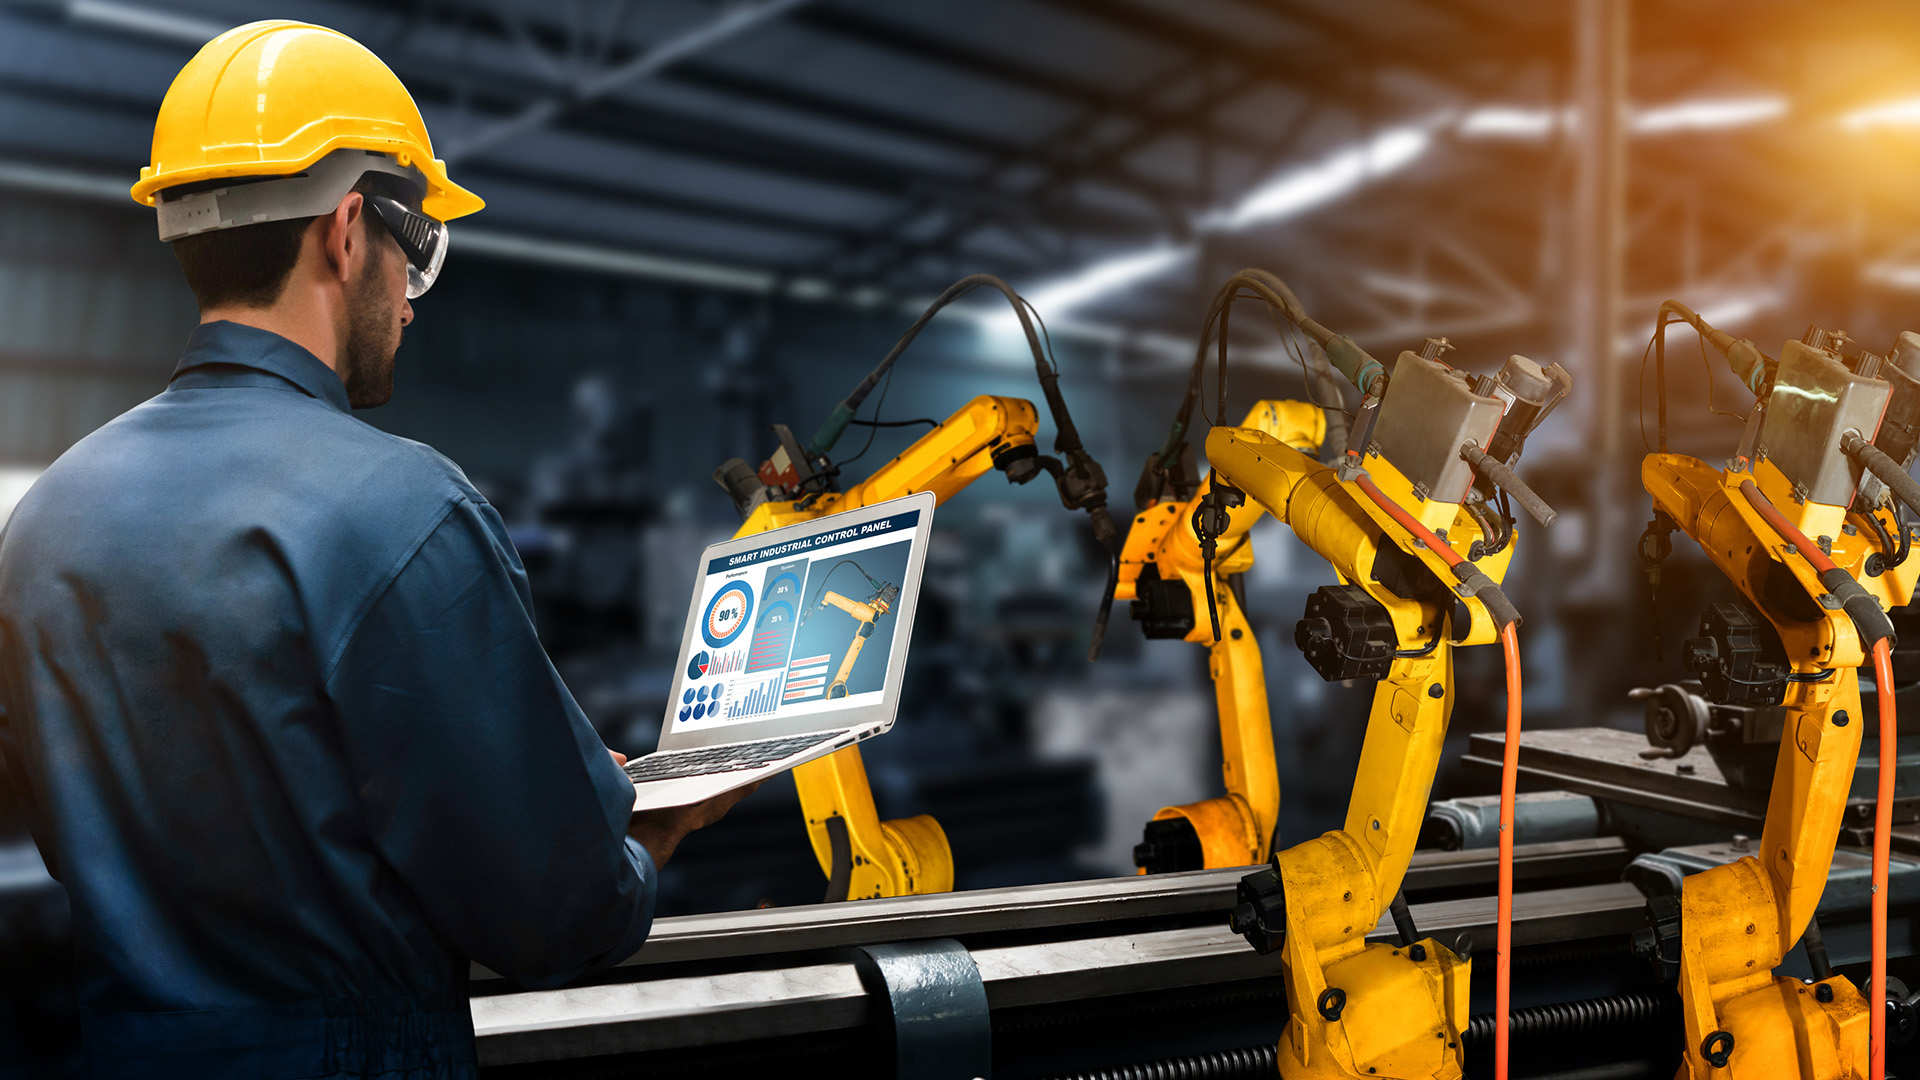 Smart factory engineer using automation technology to control robotic arms on a tablet